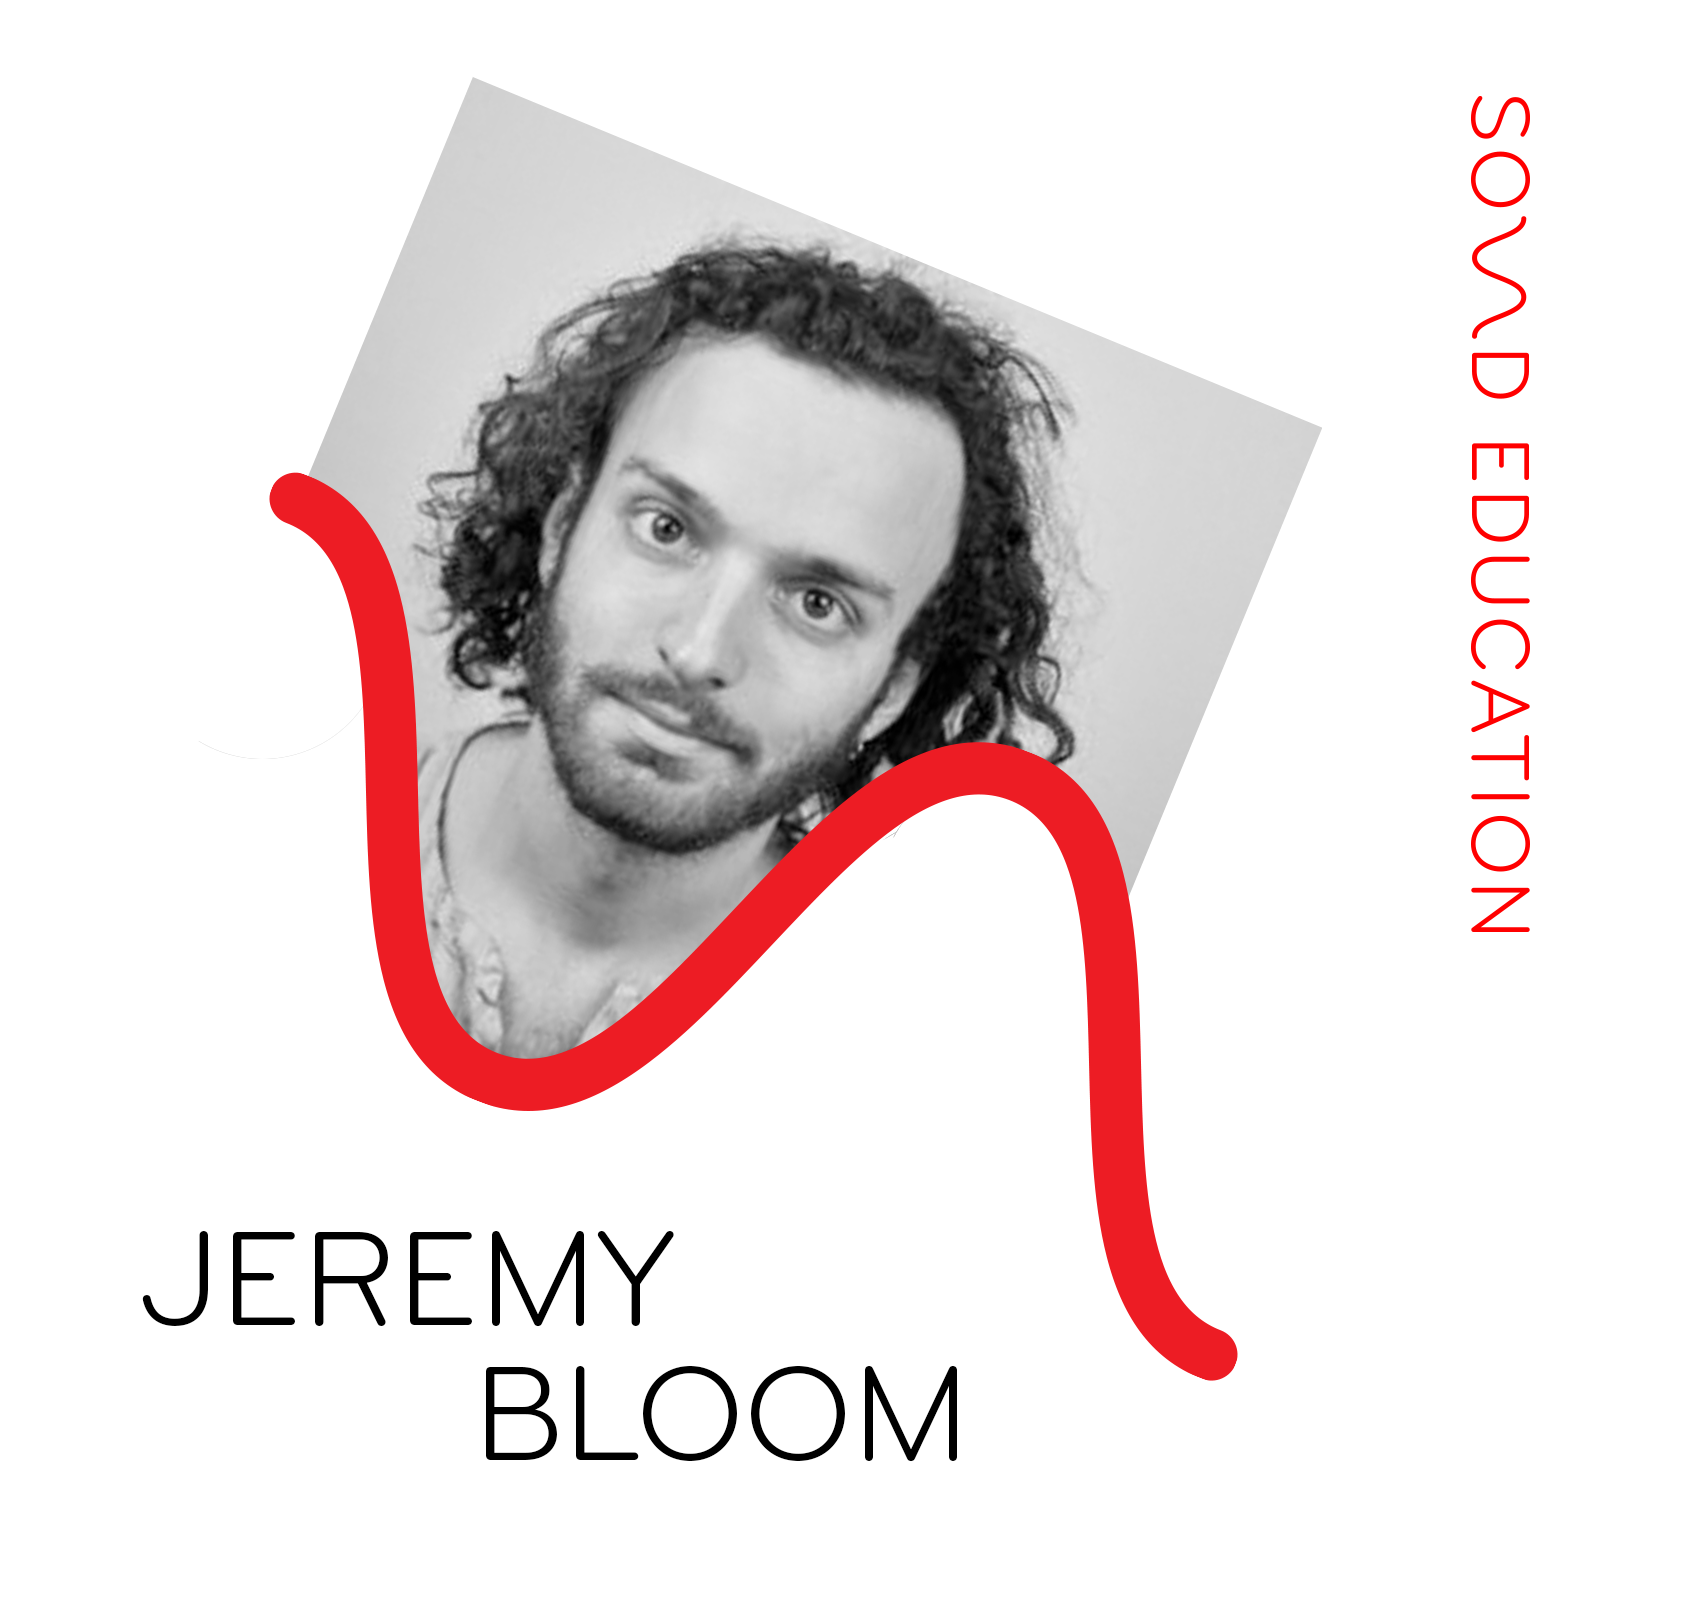 bloom_jeremy.png